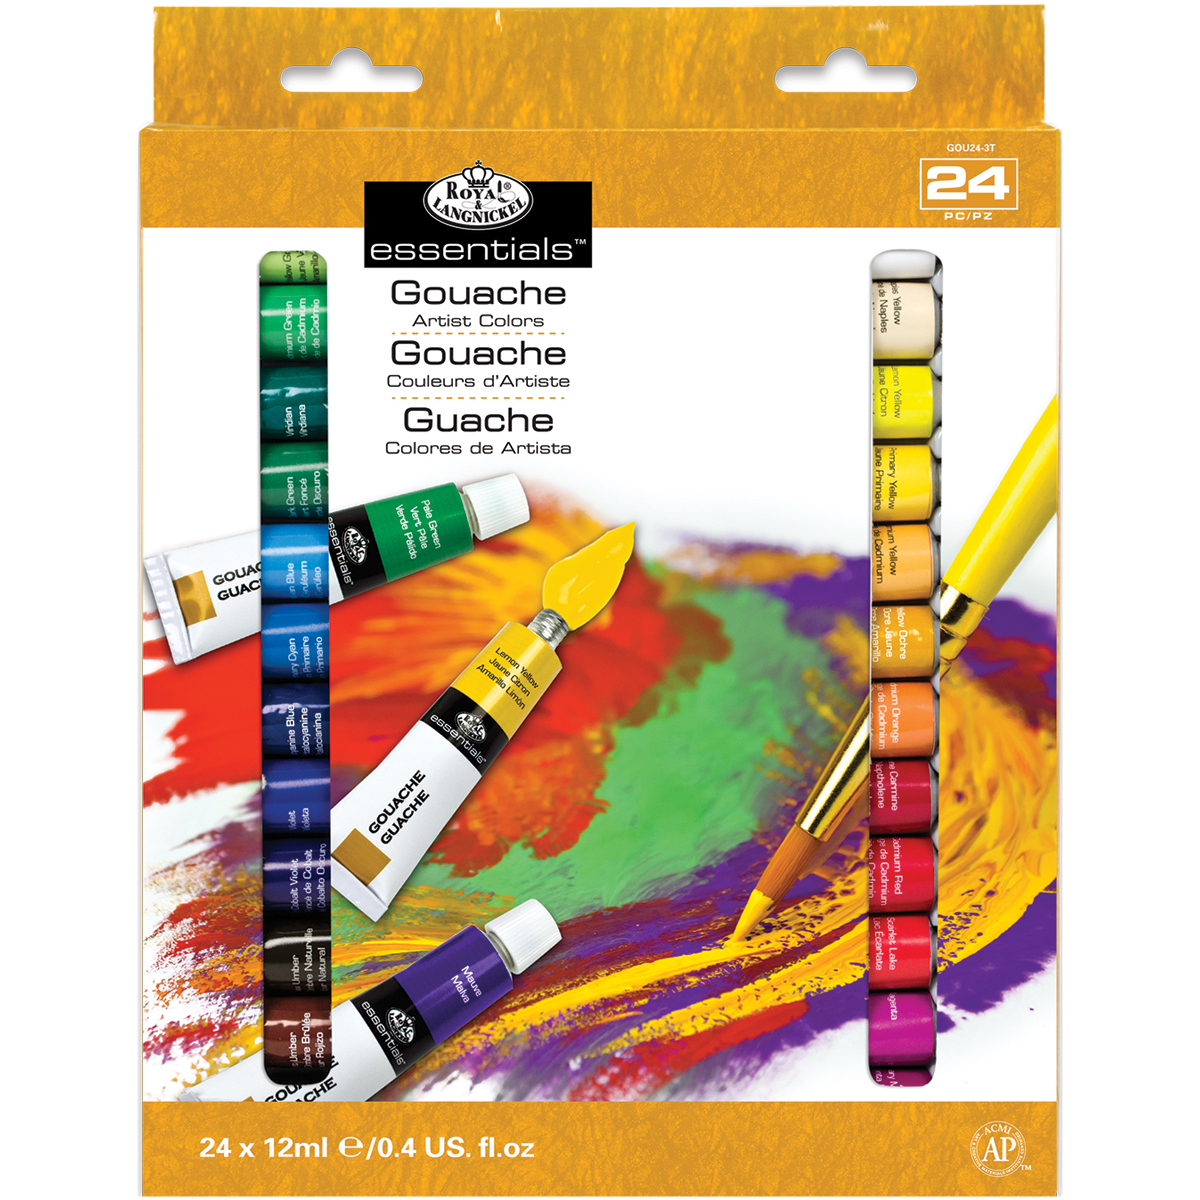 Essentials Gouache Artist Colors / 24 pieces